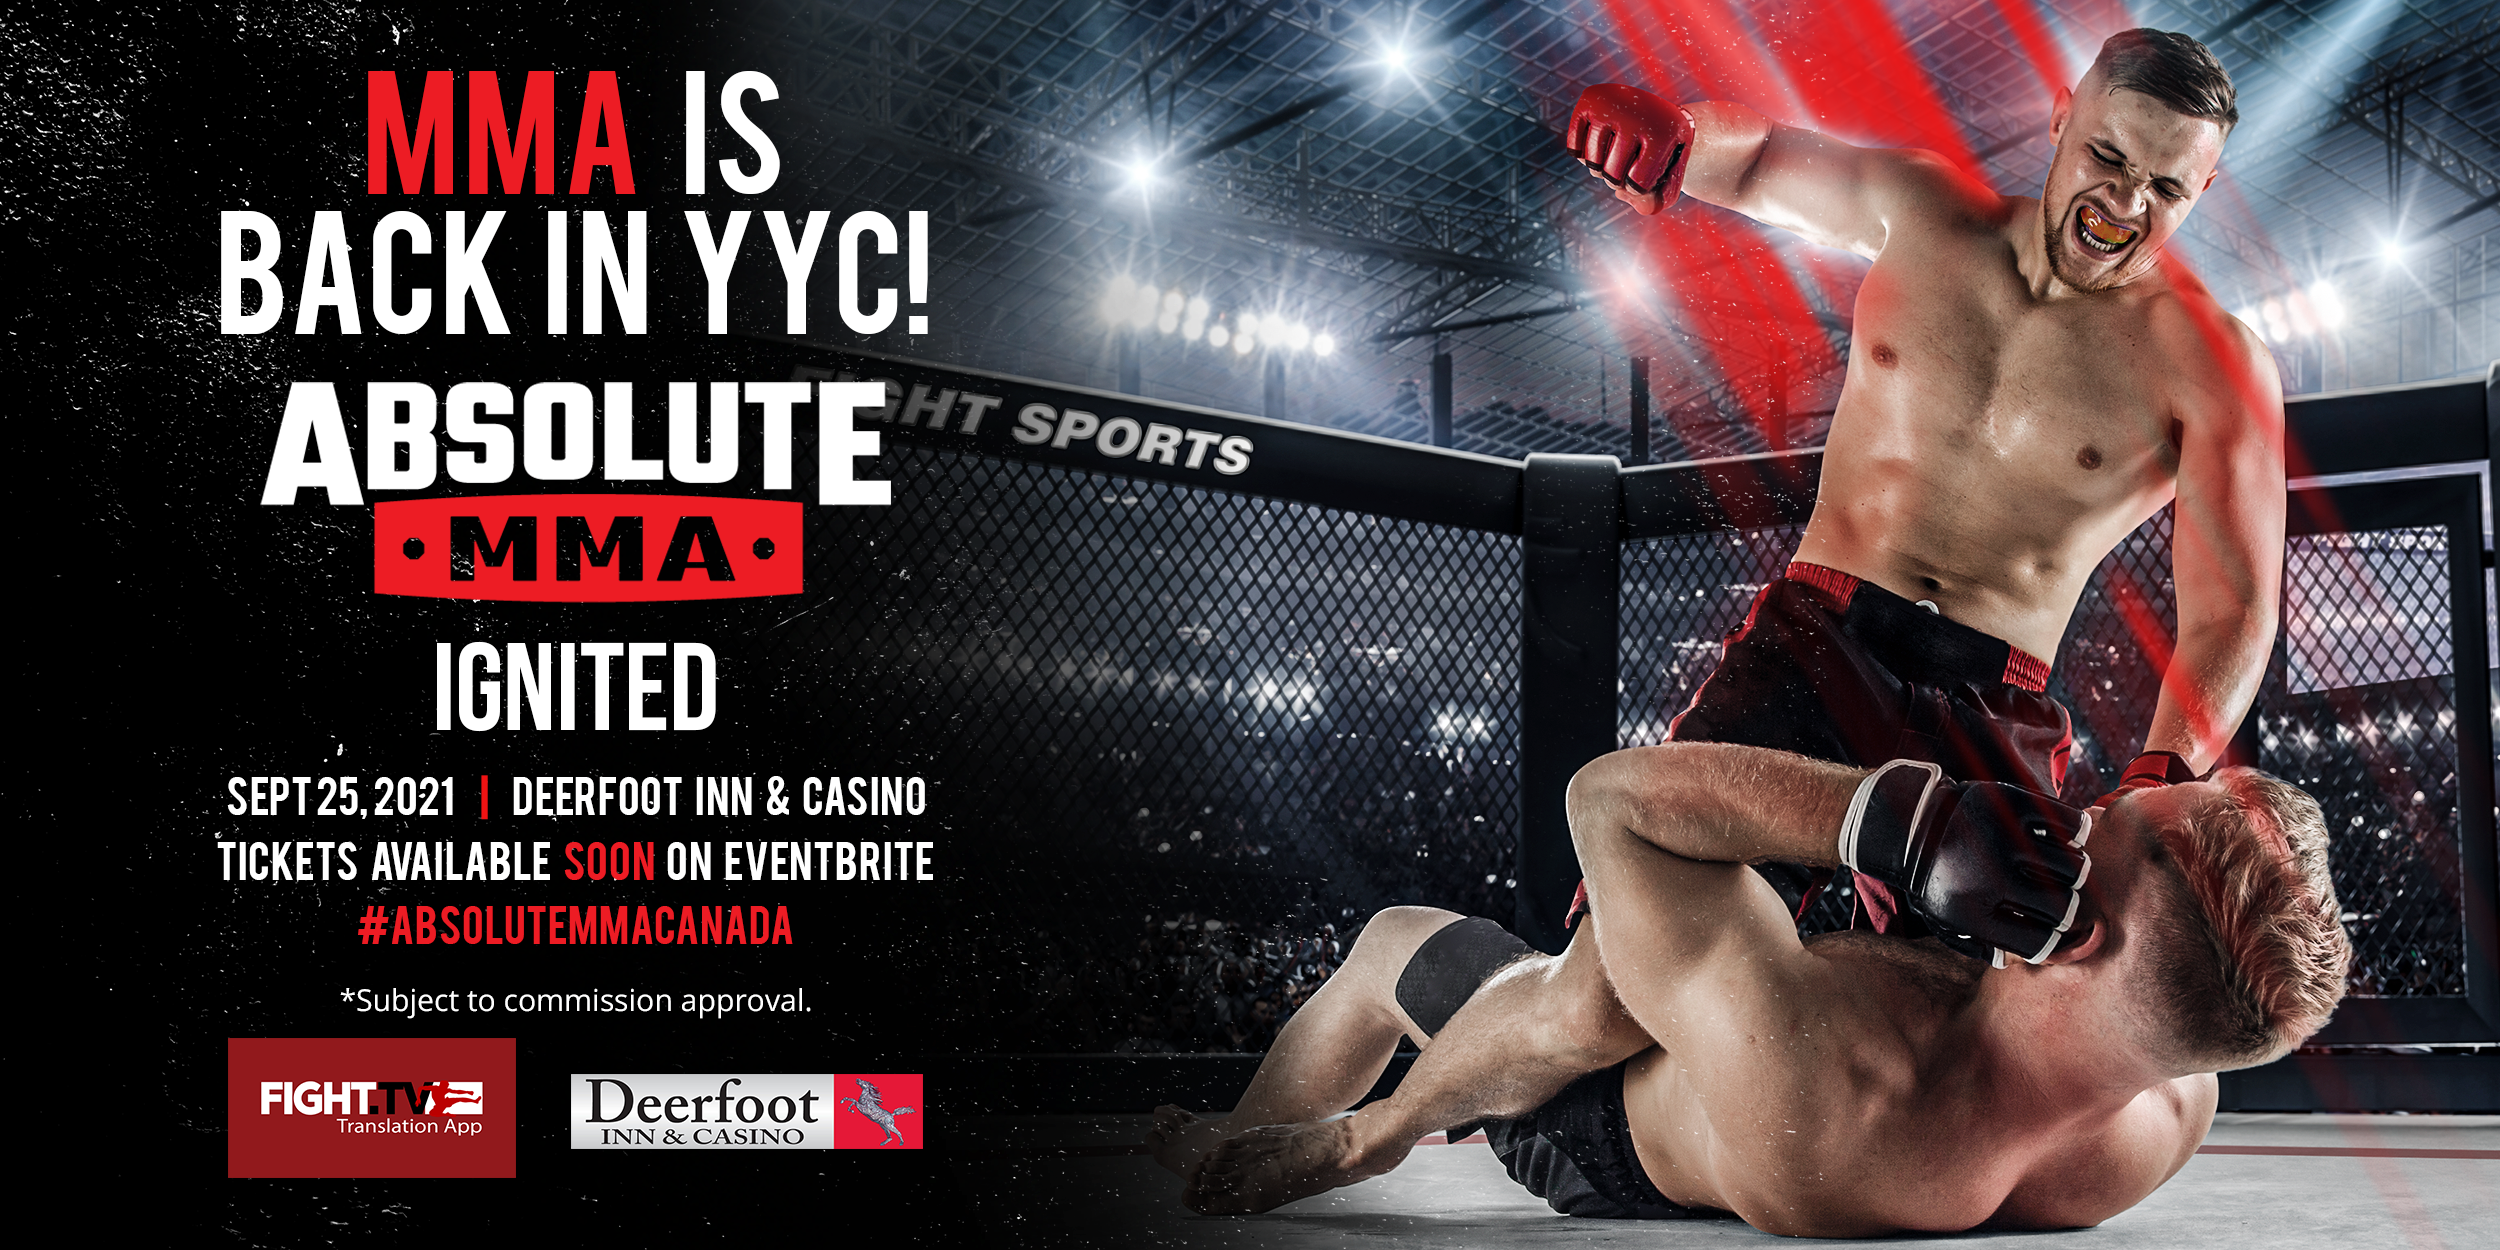 SAVE THE DATE : MMA is Back in YYC! Absolute MMA - Ignited